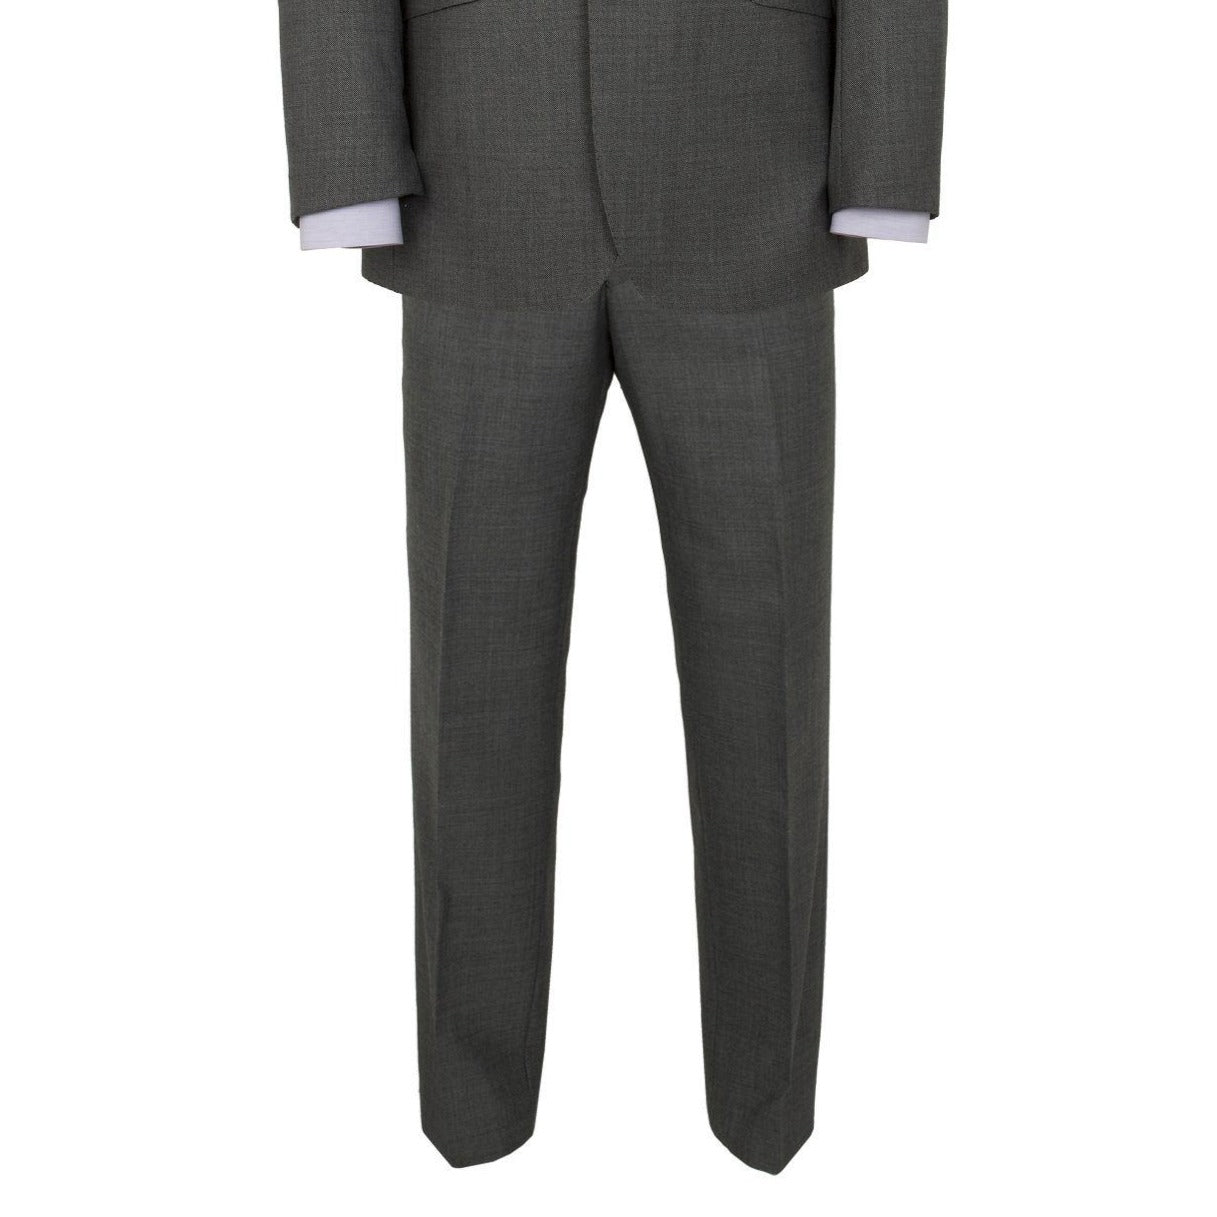 Alfred Brown Charcoal Grey Wool Trouser - Leonard Silver